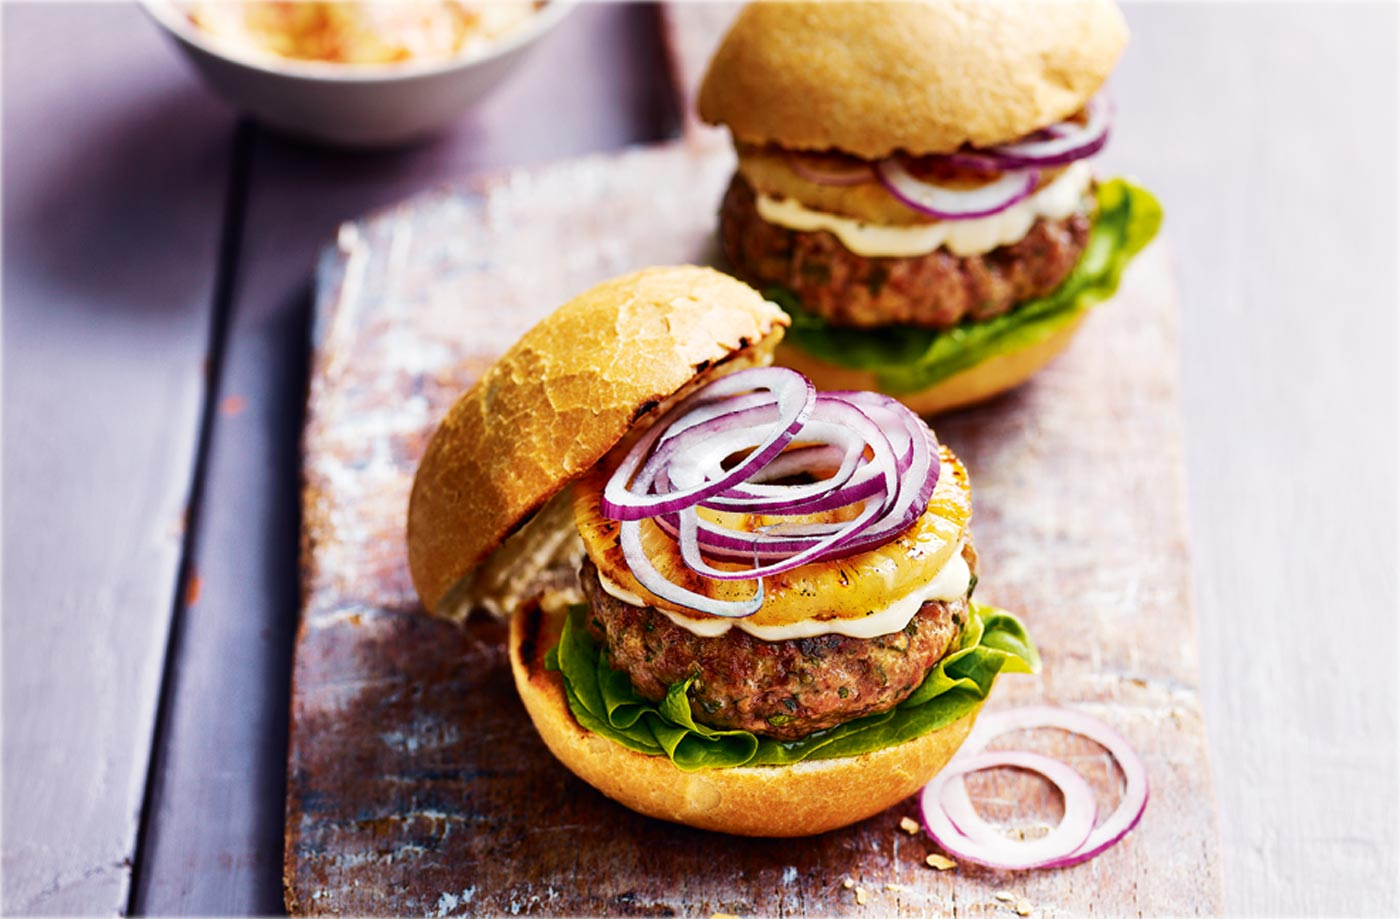 Pork and pineapple burgers recipe